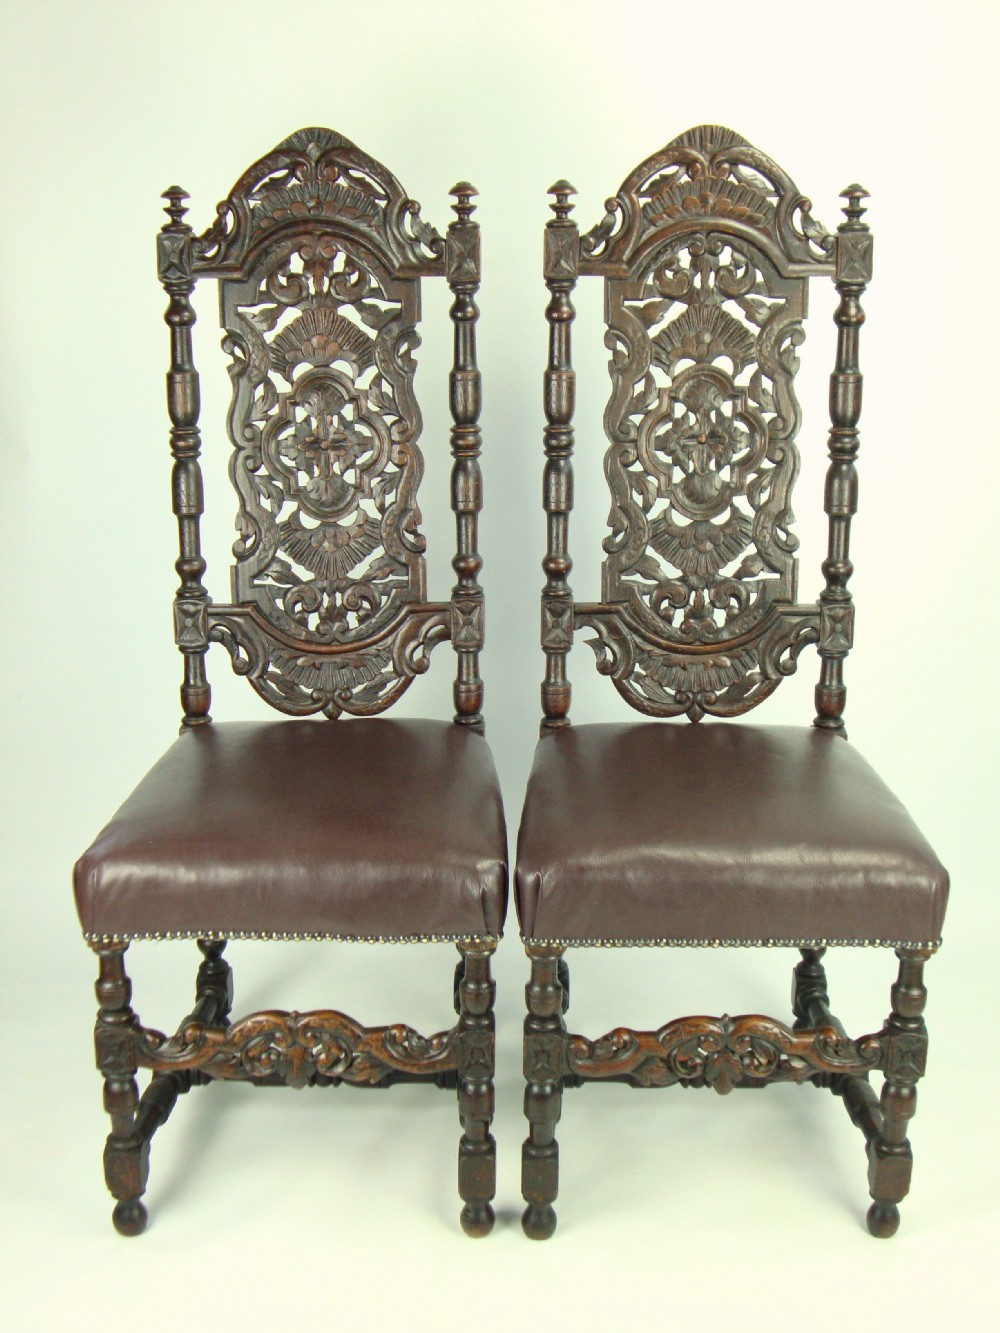 High back antique chairs - Chairs Antique Gothic Chairs Antique High Chairs Antique Back Chairs